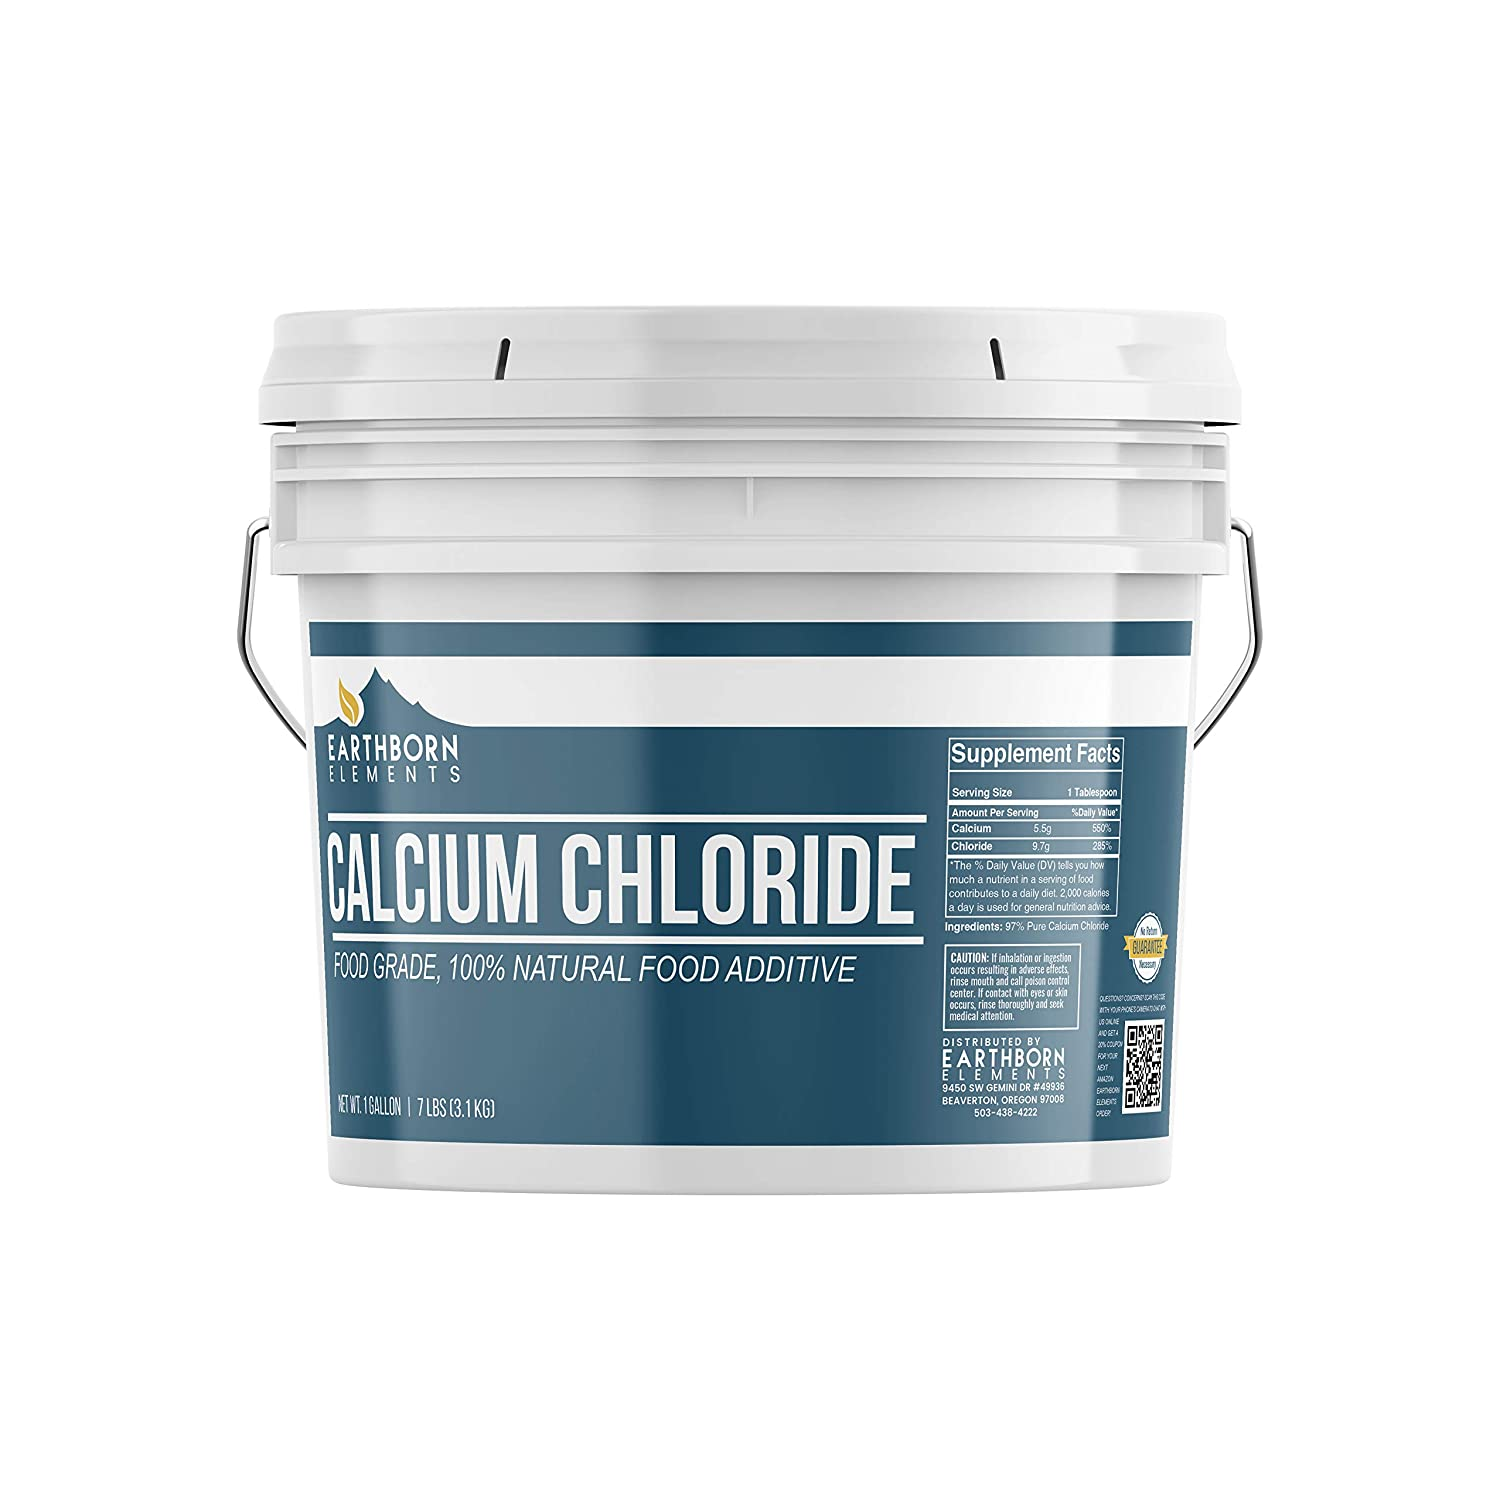 Calcium Chloride (1 Gallon Bucket, 7 lb) by Earthborn Elements, Food Grade, Brewing/Winemaking, Pickling, Cheesemaking, Sports Drinks, Food Additive/Preservative, Resealable Bucket